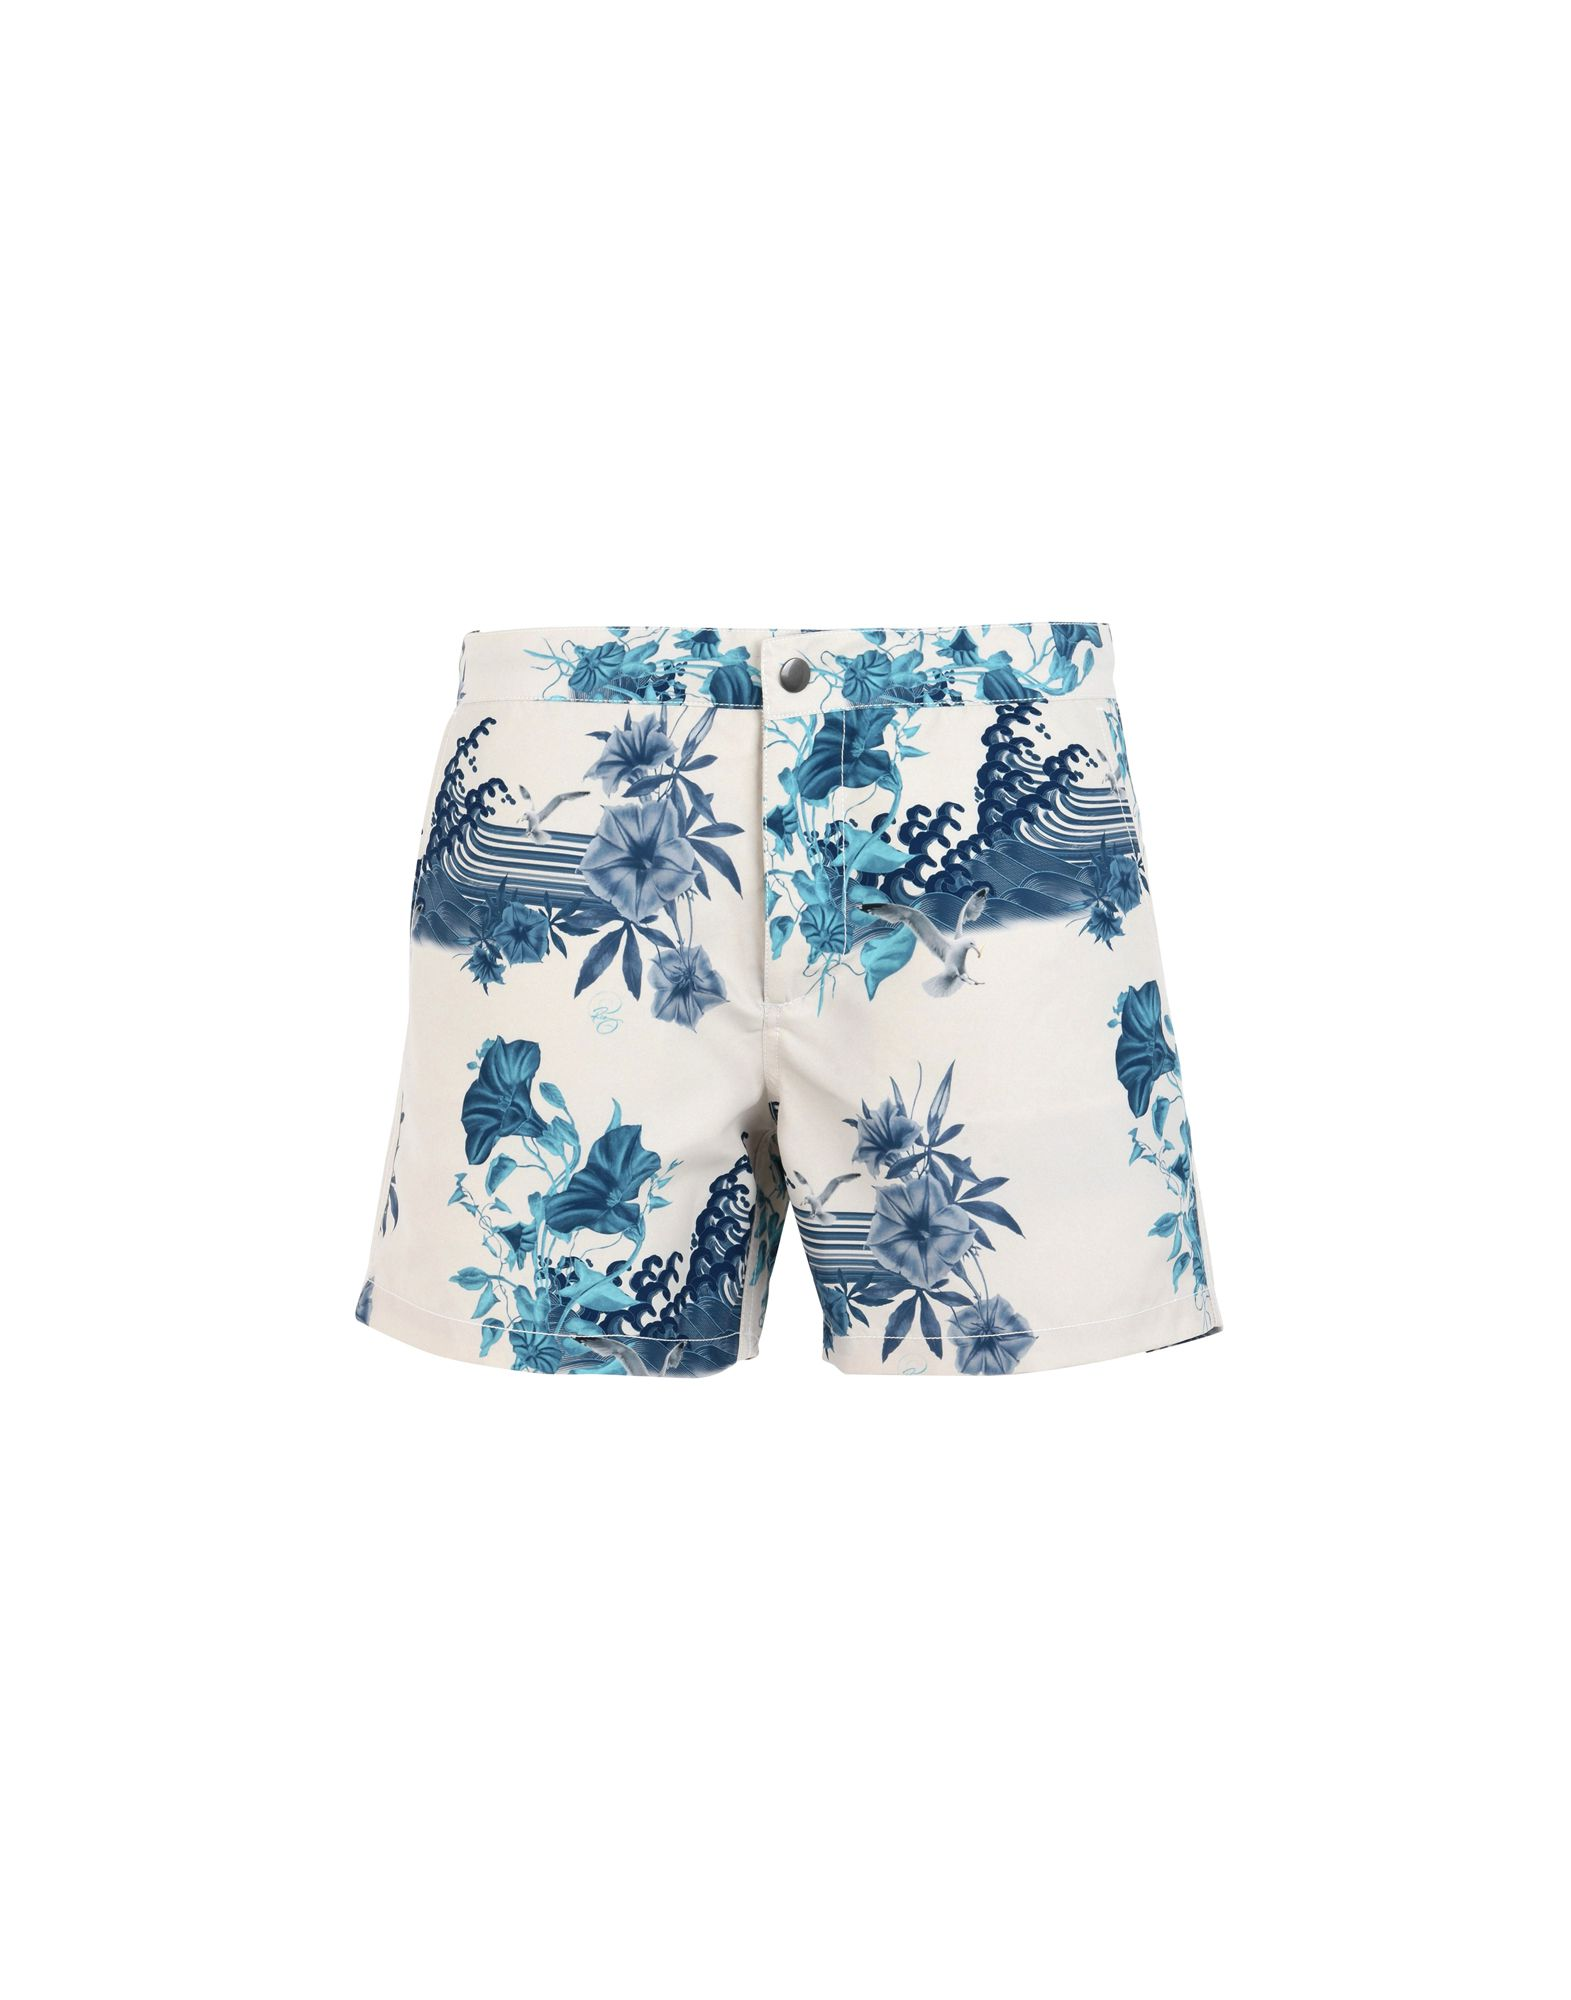 RIZ BOARDSHORTS Swim Shorts in Ivory